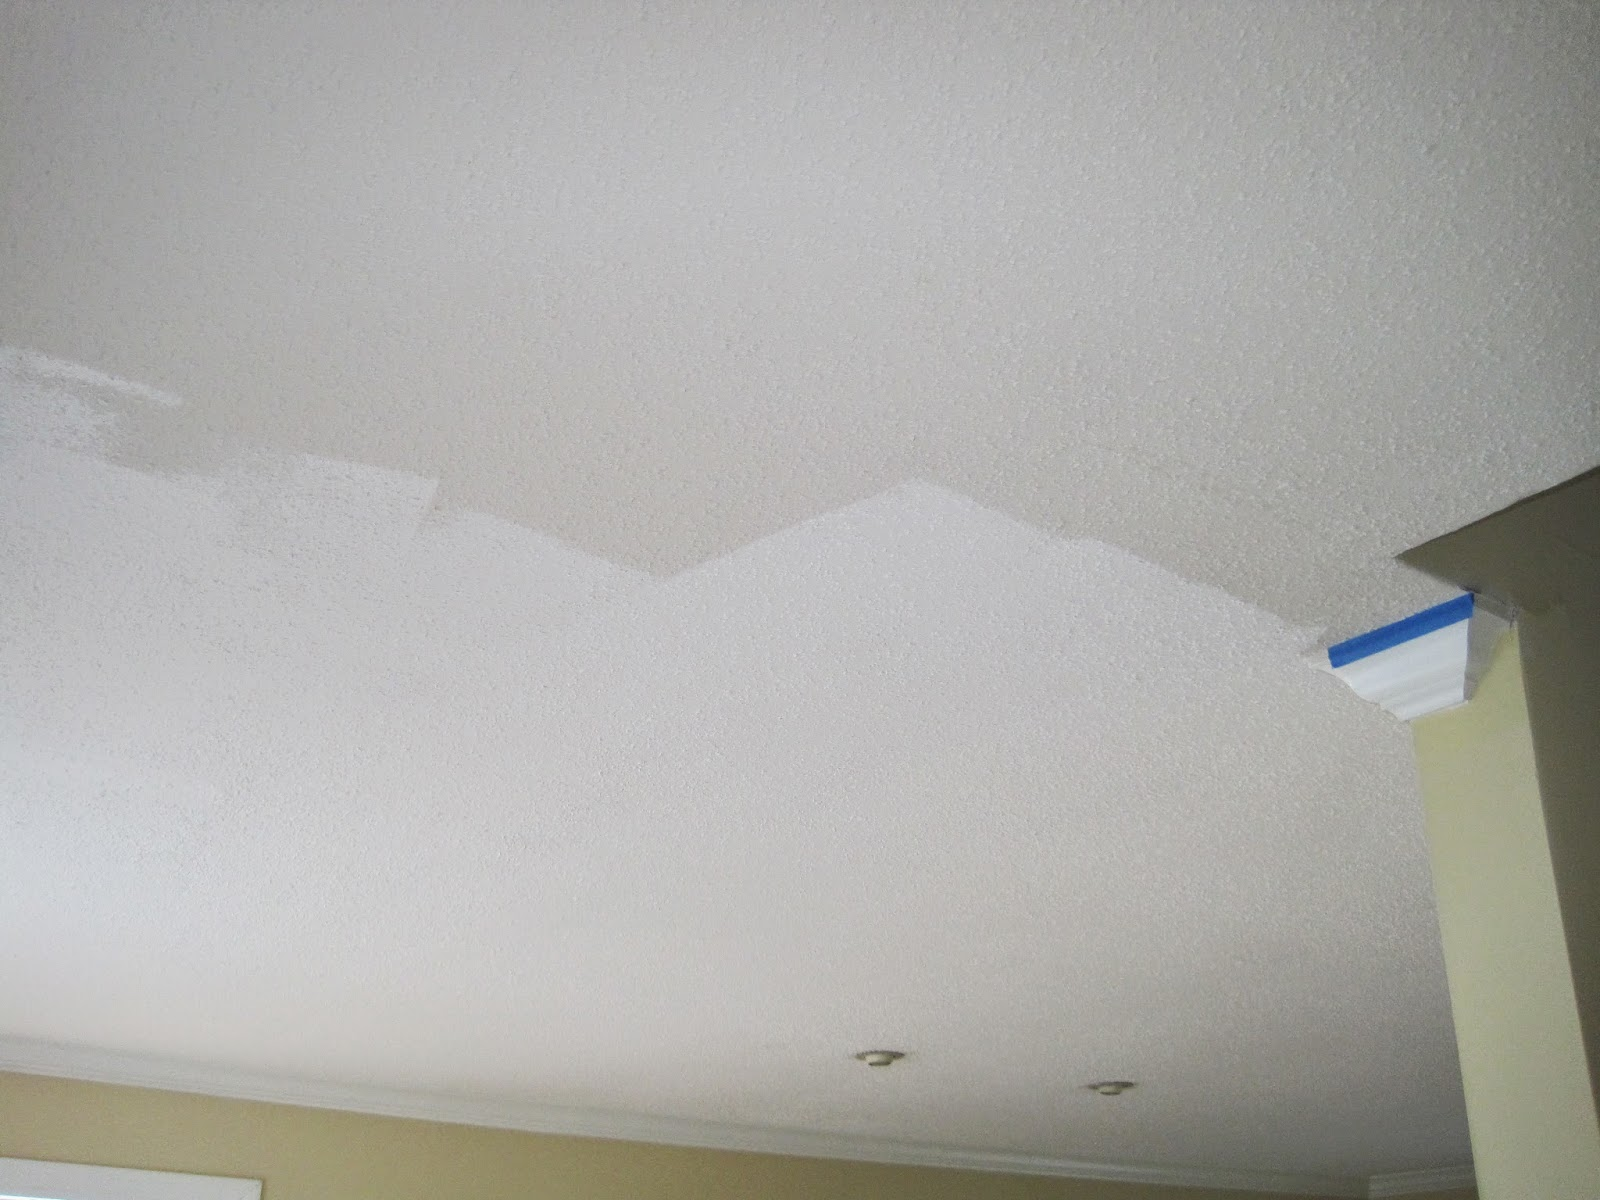 cost to paint popcorn ceiling - 28 images - 28 how much to ...